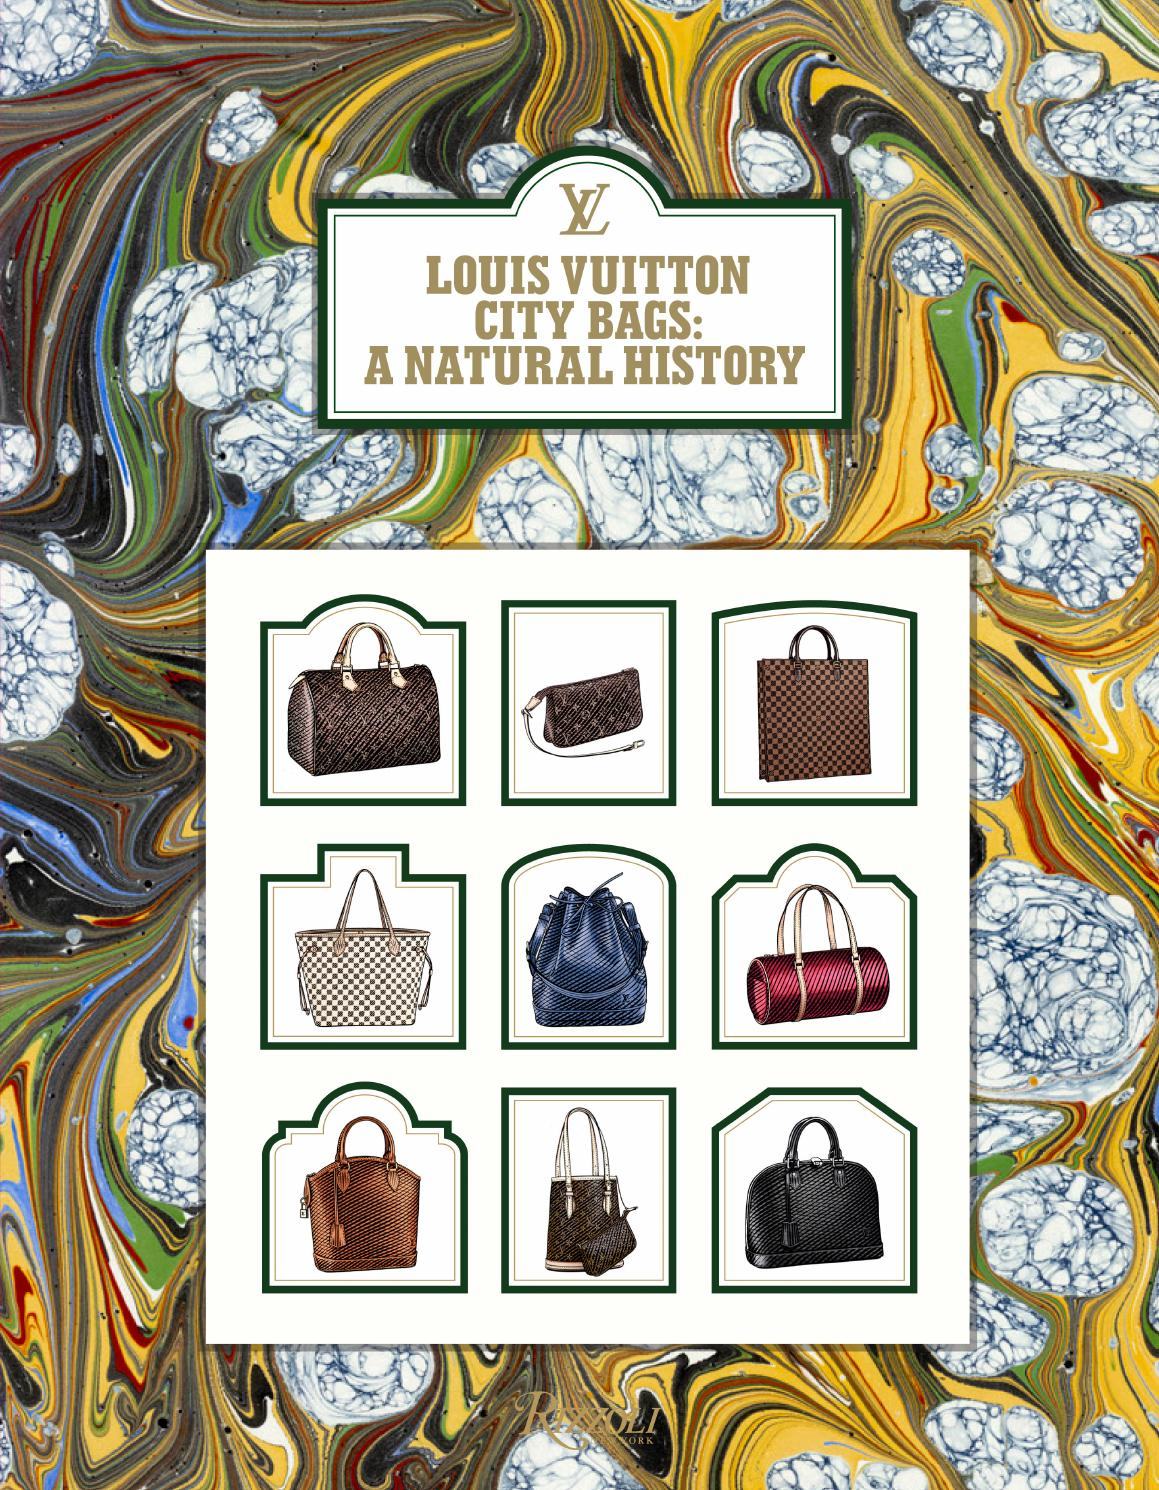 01f0bf608e65 Louis Vuitton City Bags  A Natural History by Rizzoli International  Publications - issuu